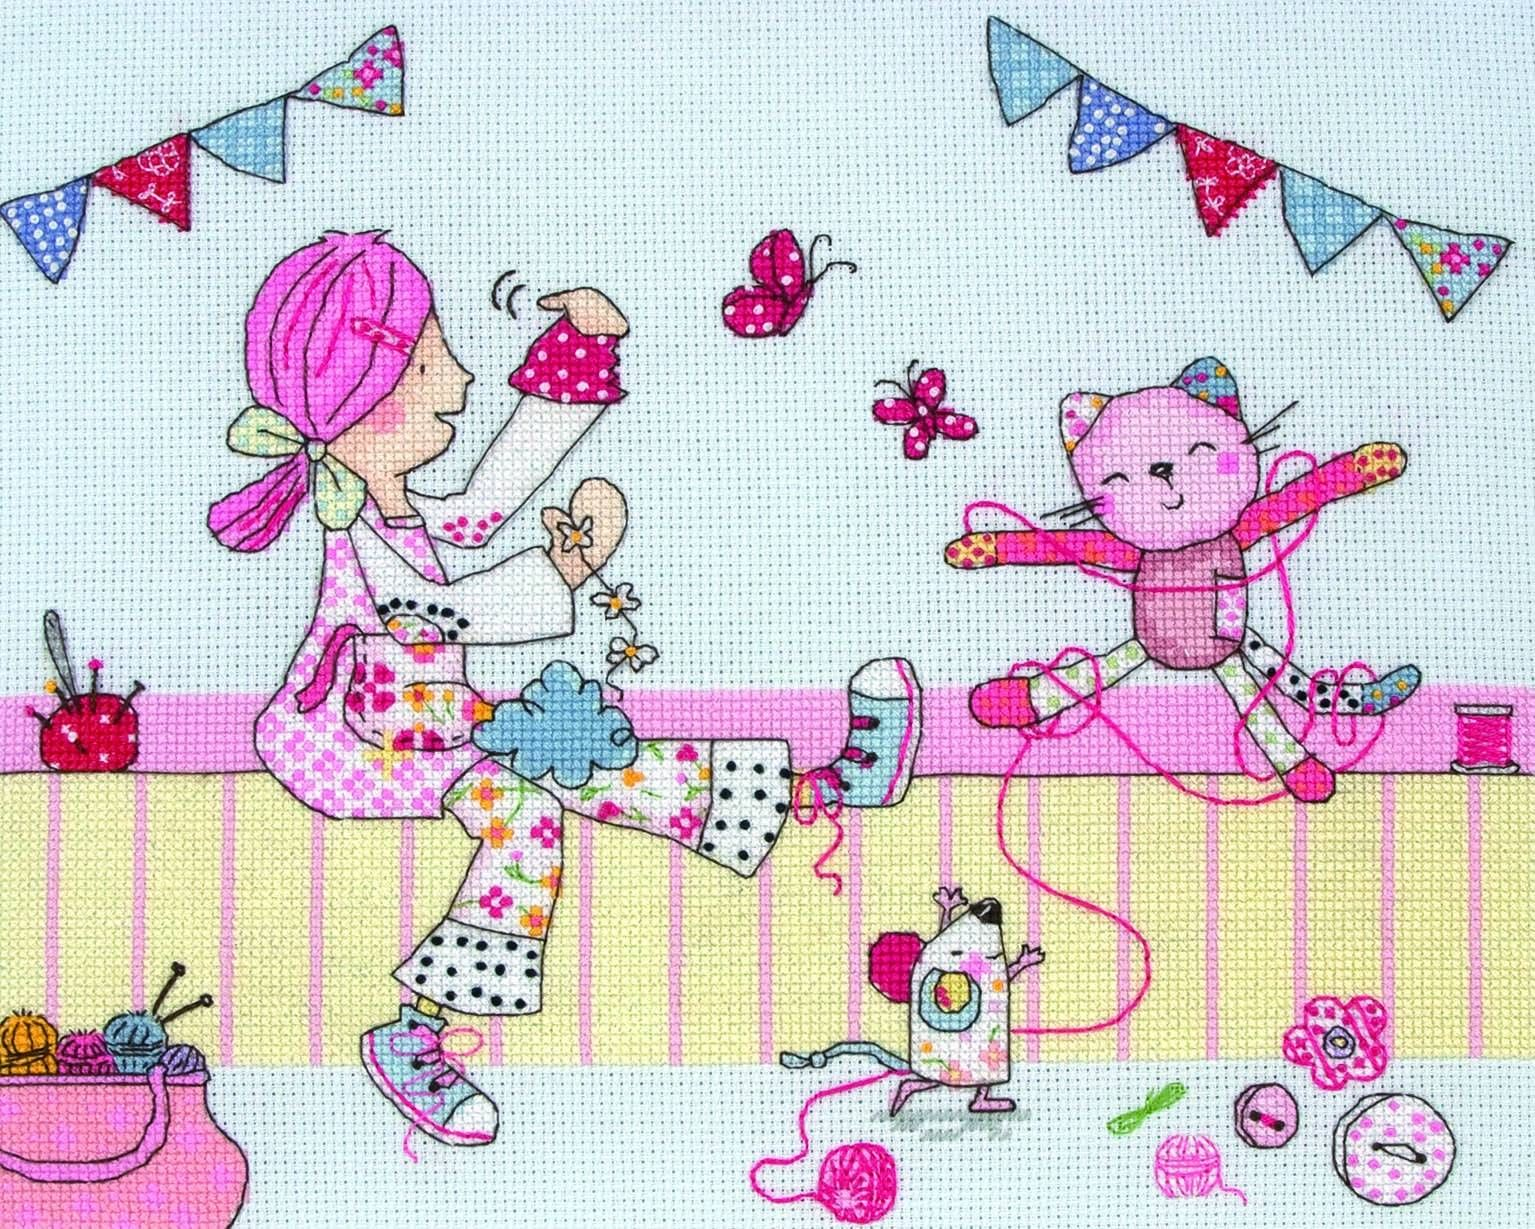 This is one of our personal favourites of the new range of Emily Button cross stitch kits - for obvious reasons. Emily herself loves crafting too; she even lives in a sewing box!  The popular character captures the fun of crafting in a colourful and fun-to-make pattern for girls both young and old. #EmilyButton #CrossStitch #Crafting